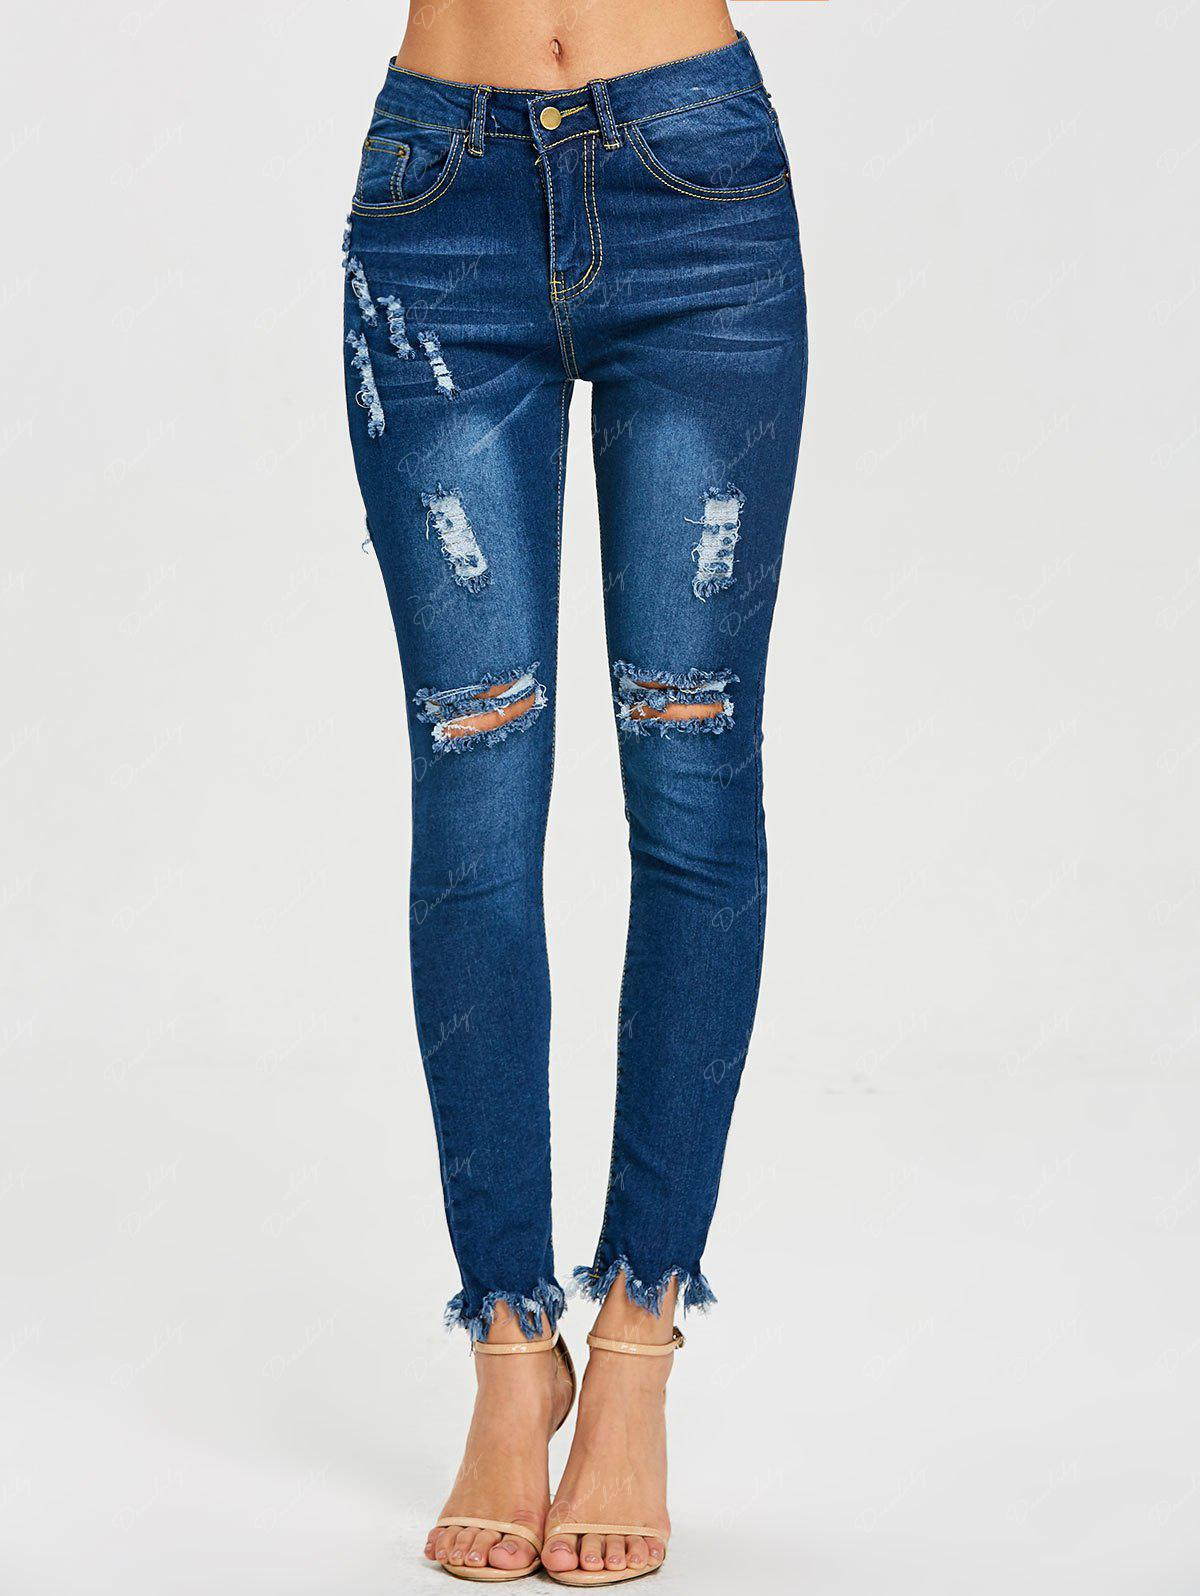 Skinny Ripped Frayed Jeans - BLUE M